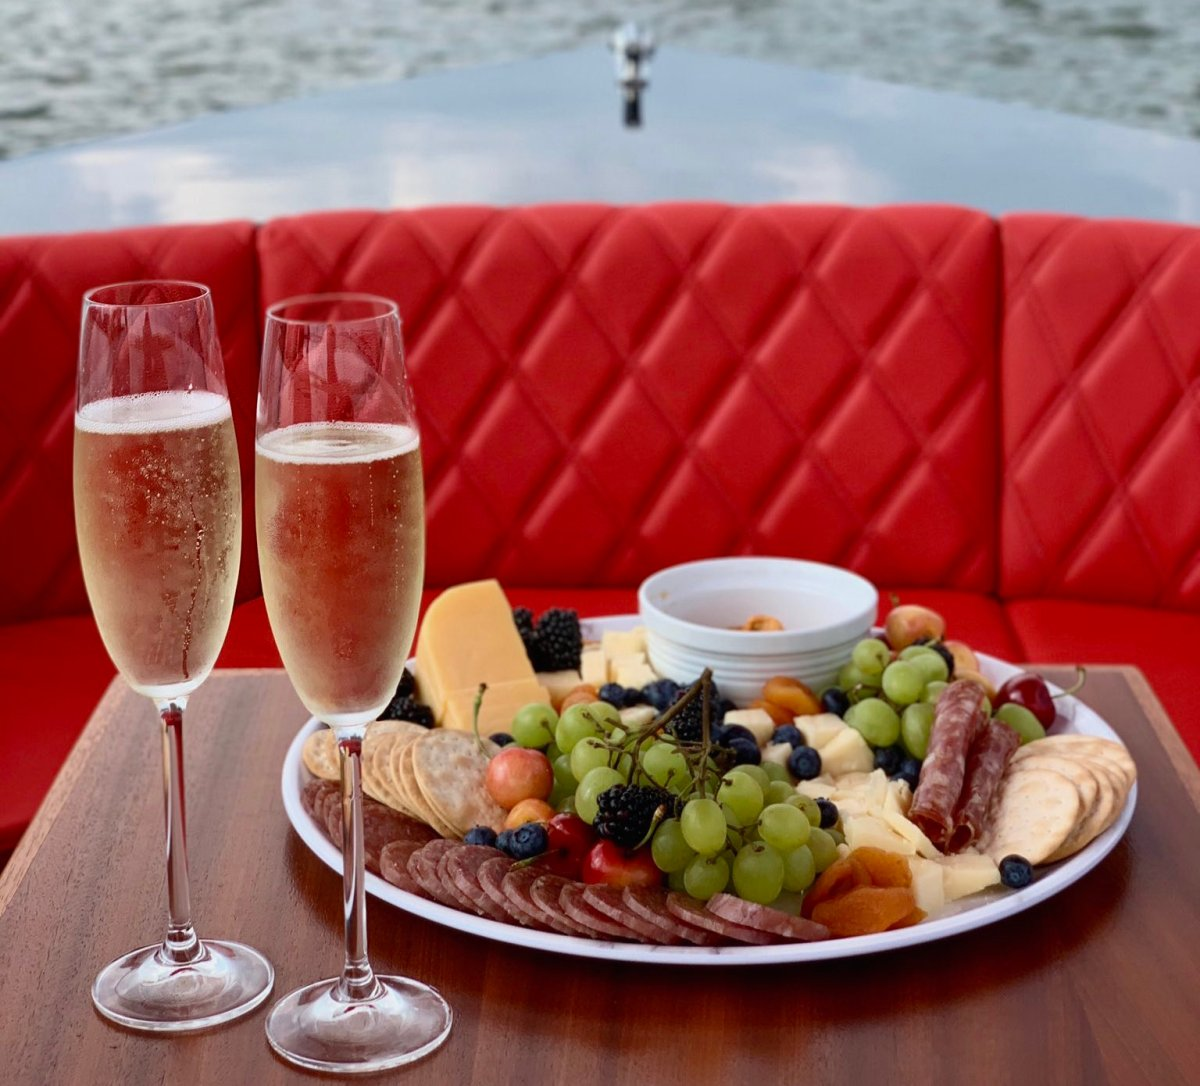 Charcuterie and cheese aboard a YACHTSY boat